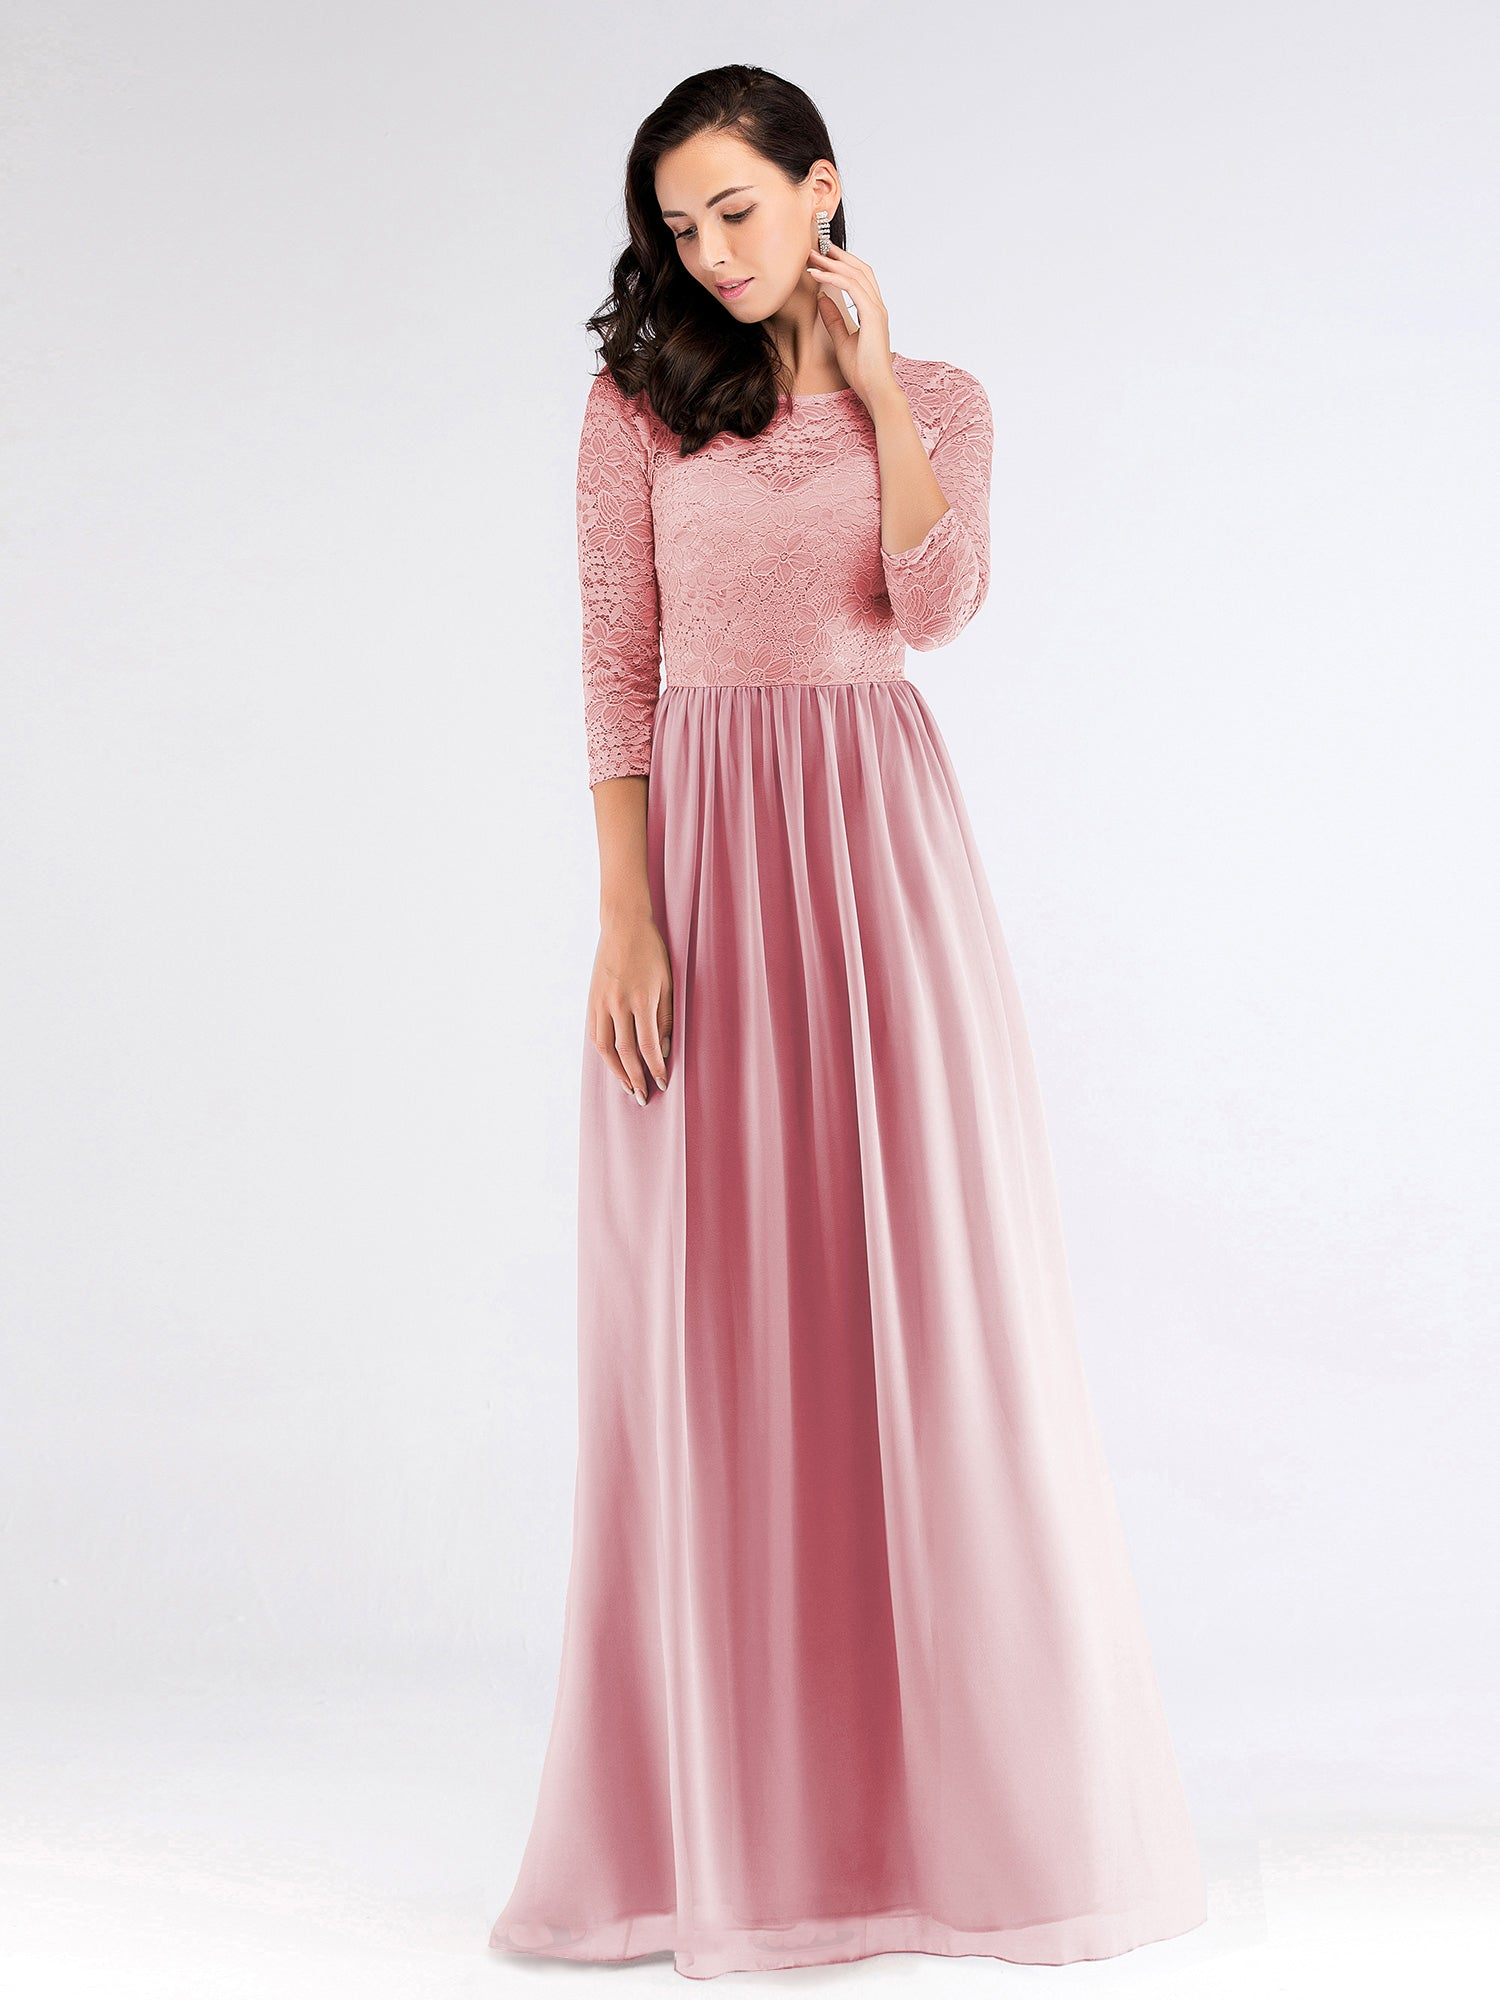 ea644891a442 Long Bridesmaid Dress With Lace Bodice